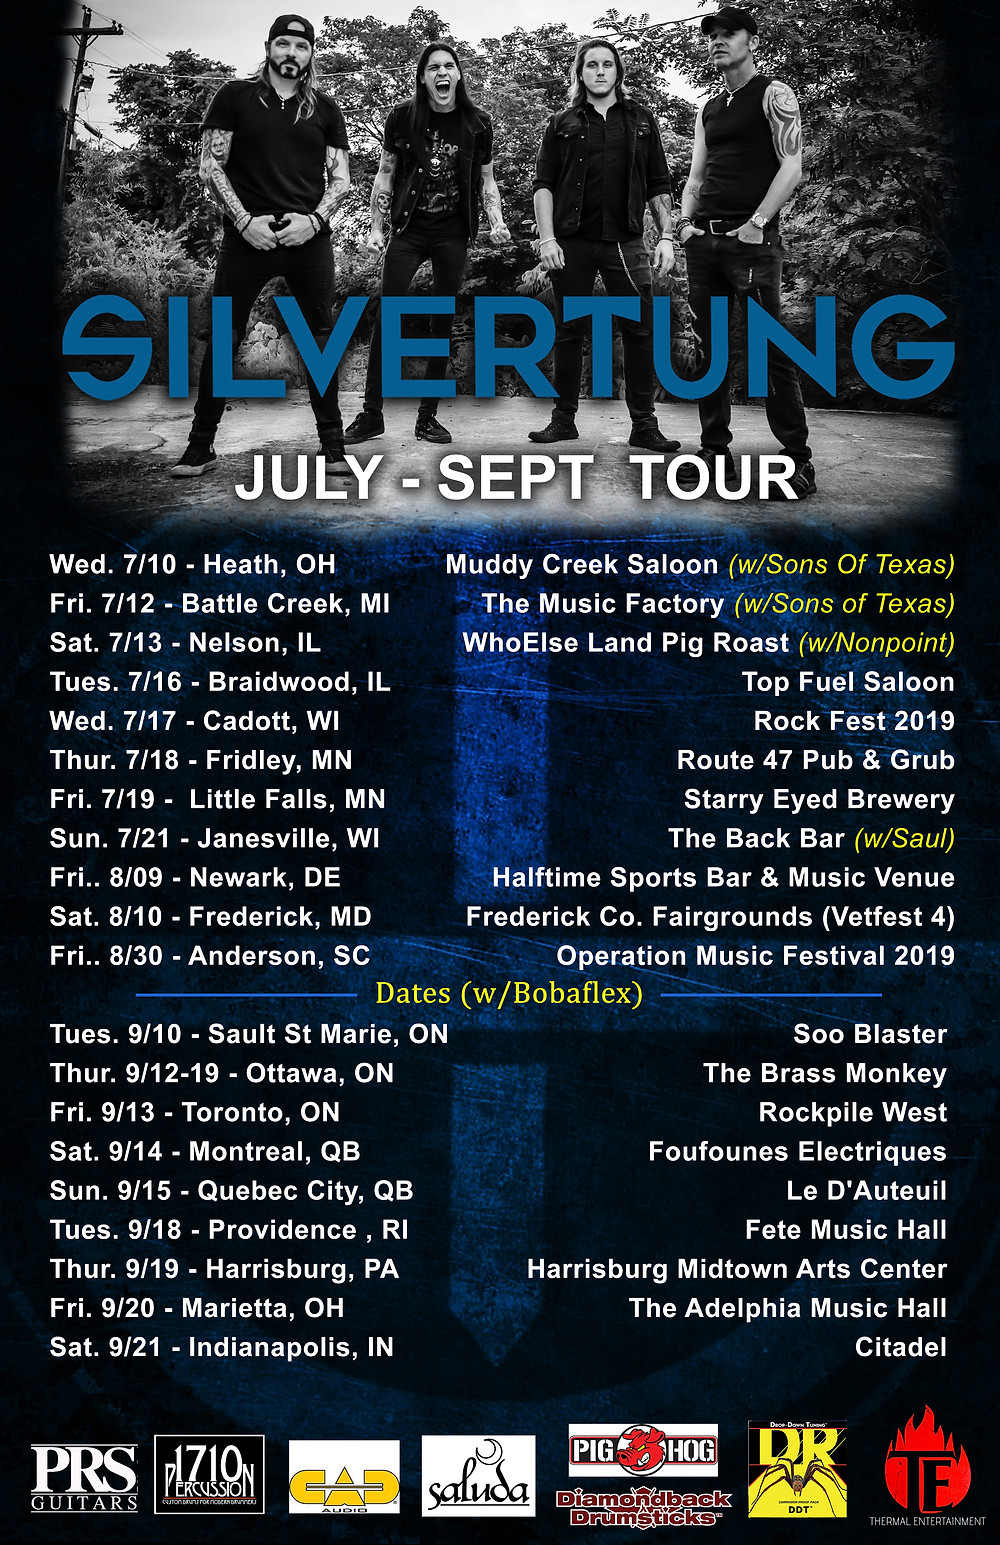 Silvertung Tour Dates July-Sept 2019